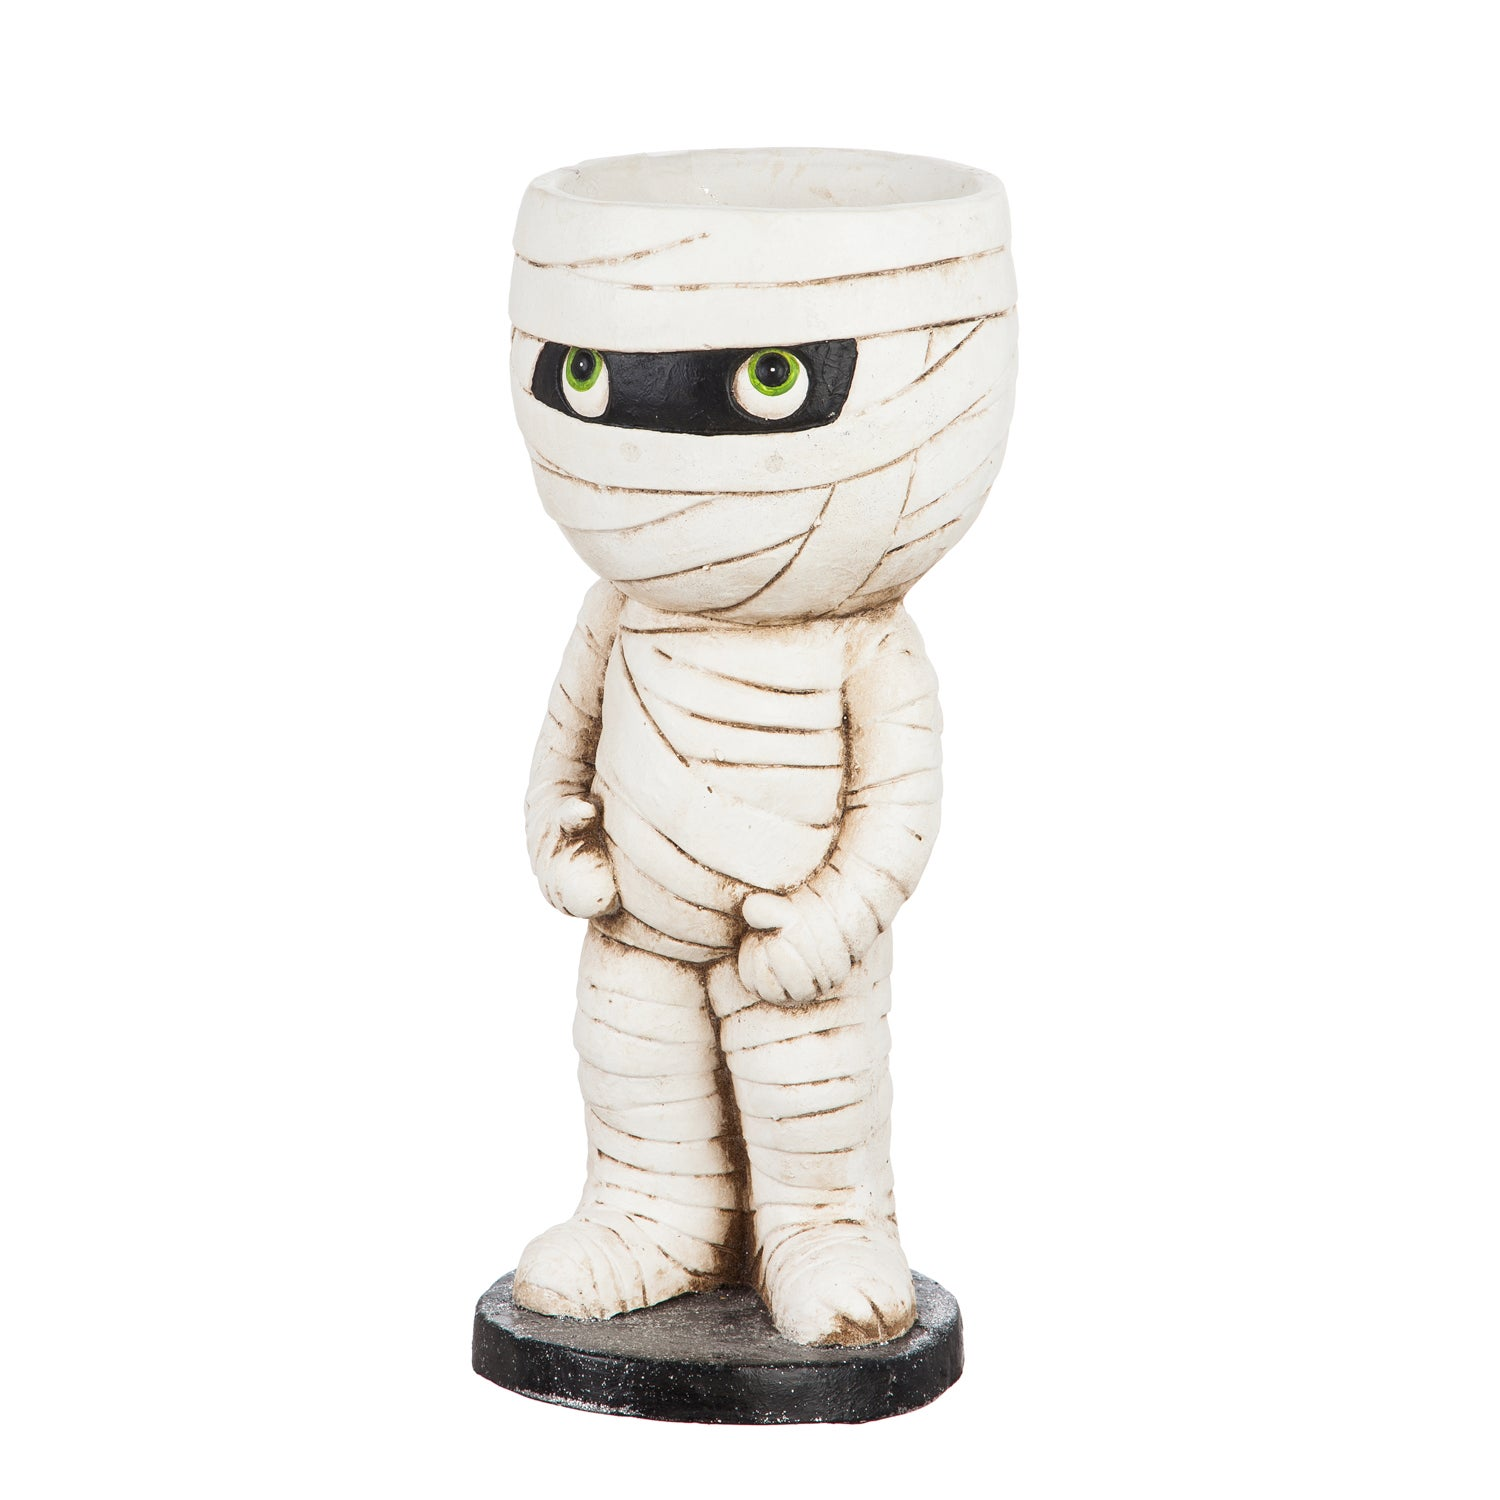 Mummy Candy Bowl Garden Statuary